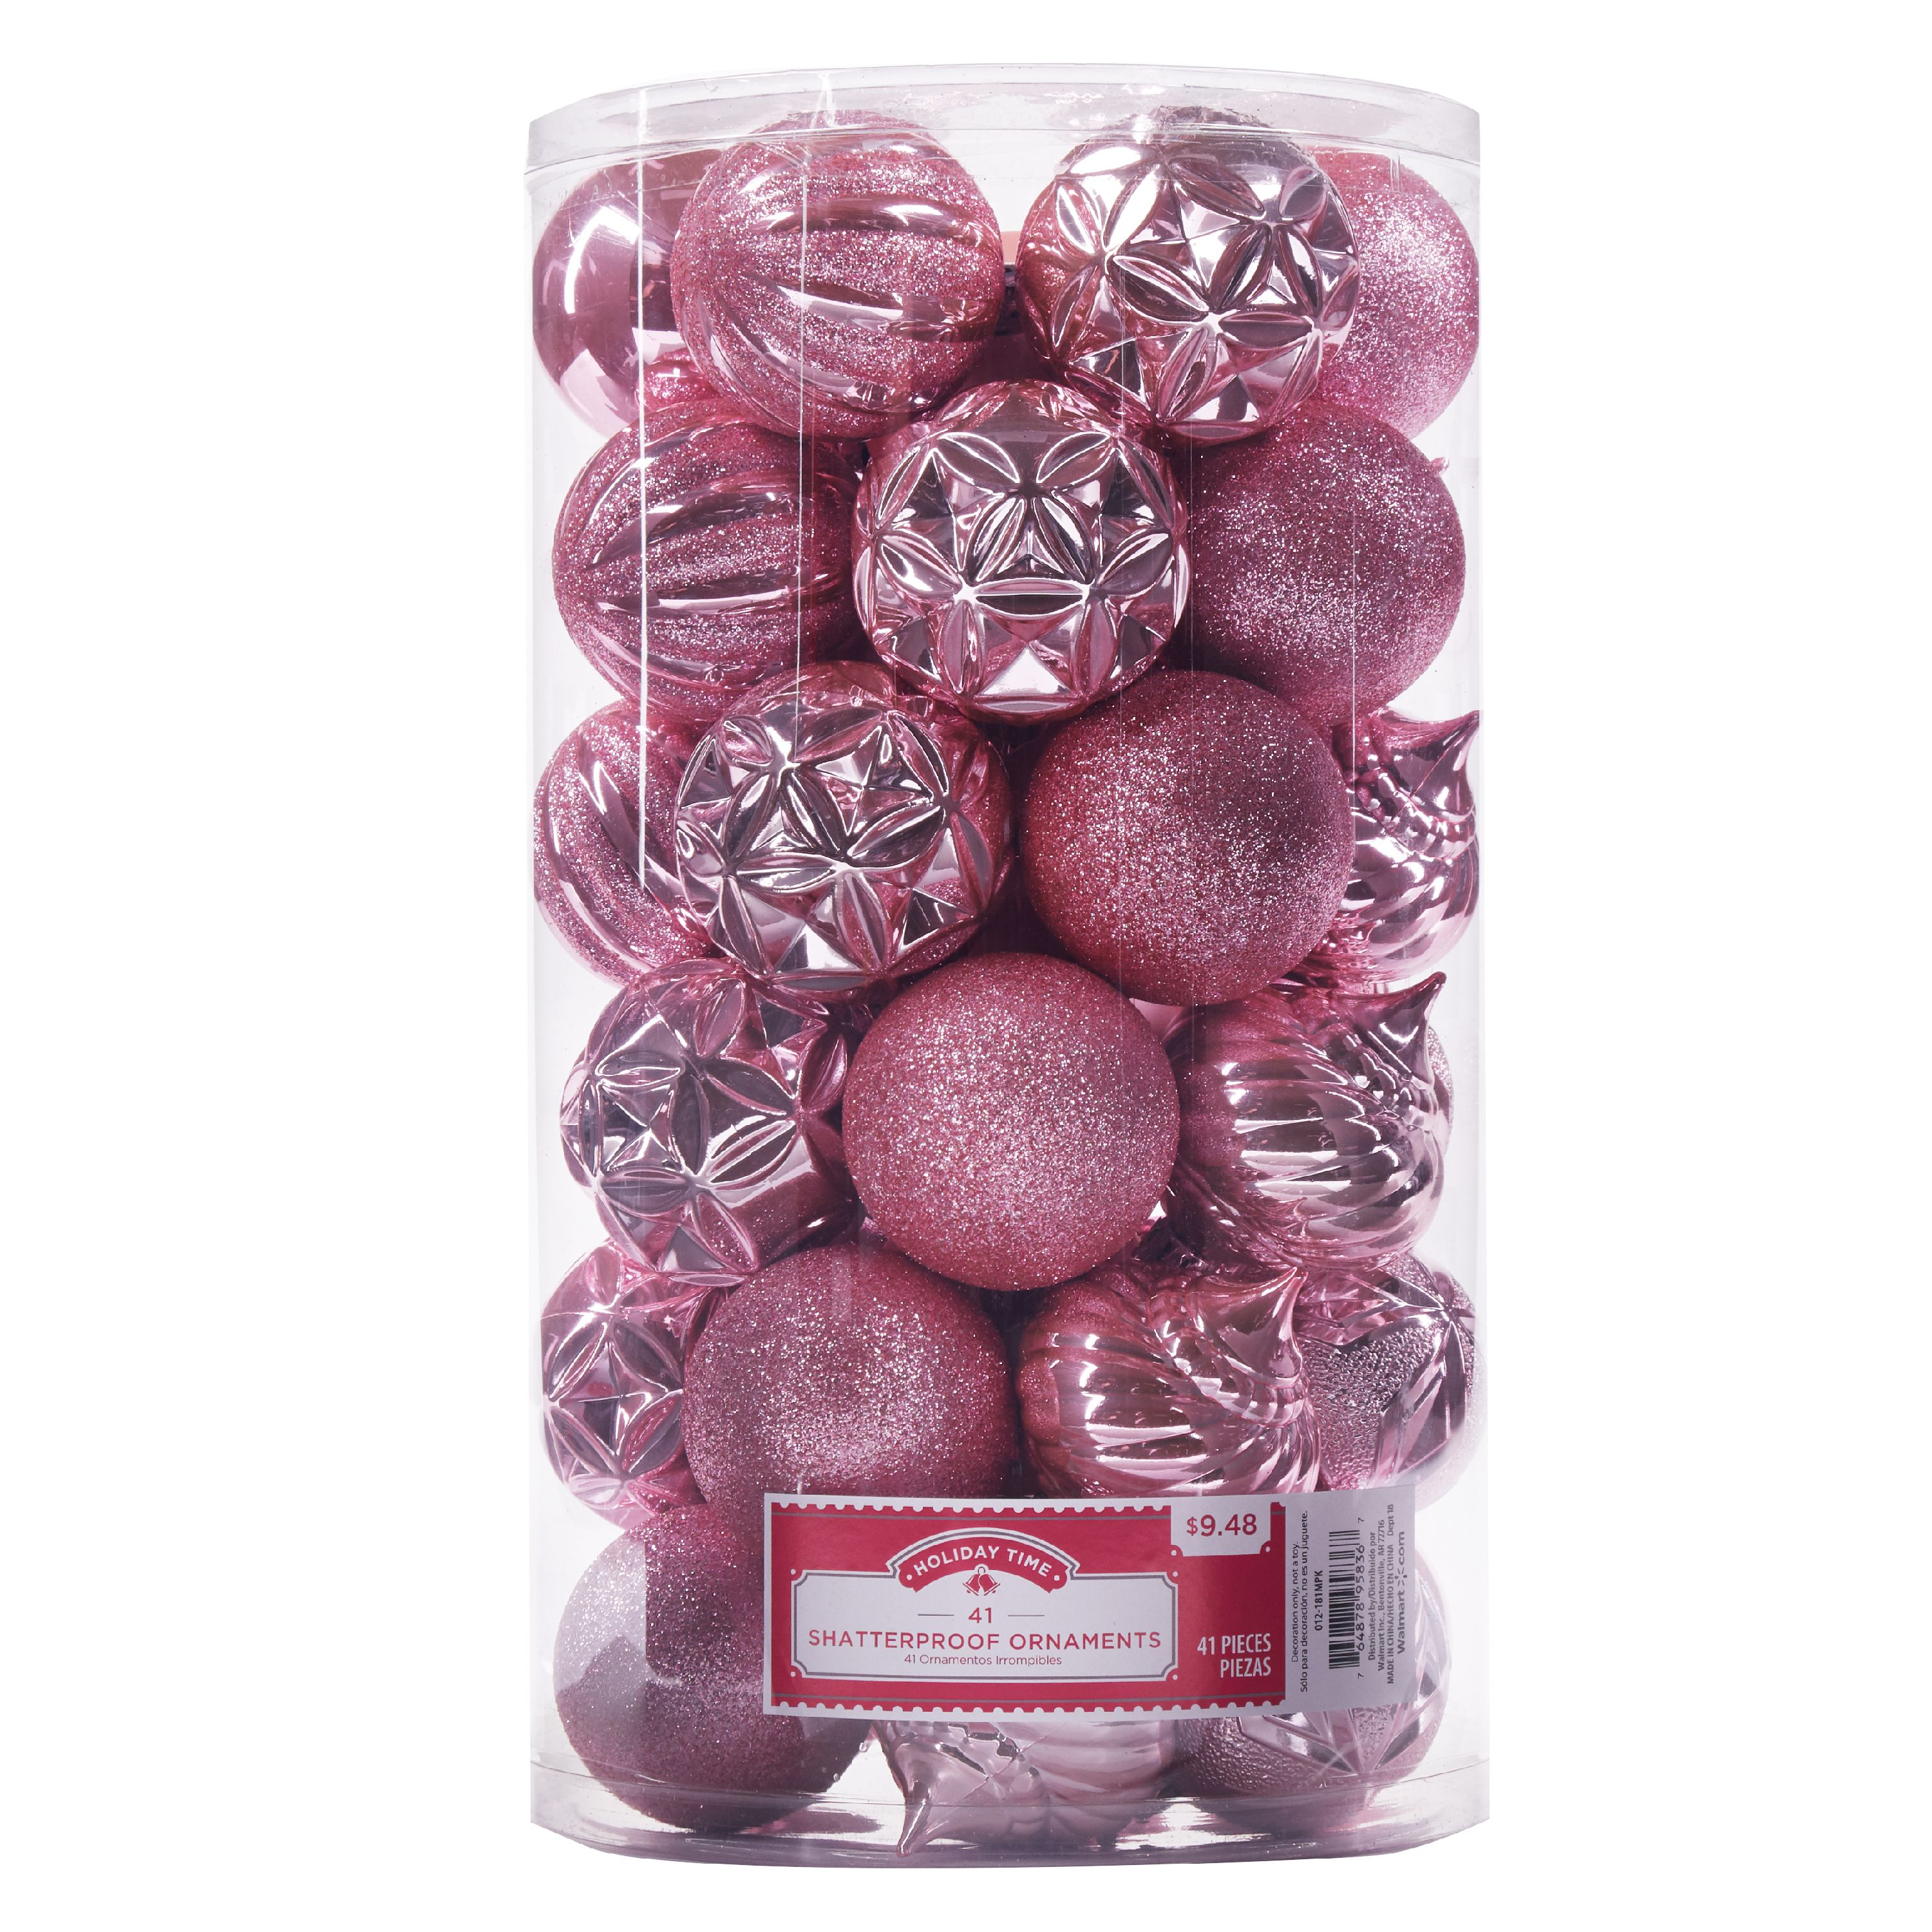 Holiday Time Shatterproof Ornaments, Pink, 41 Count